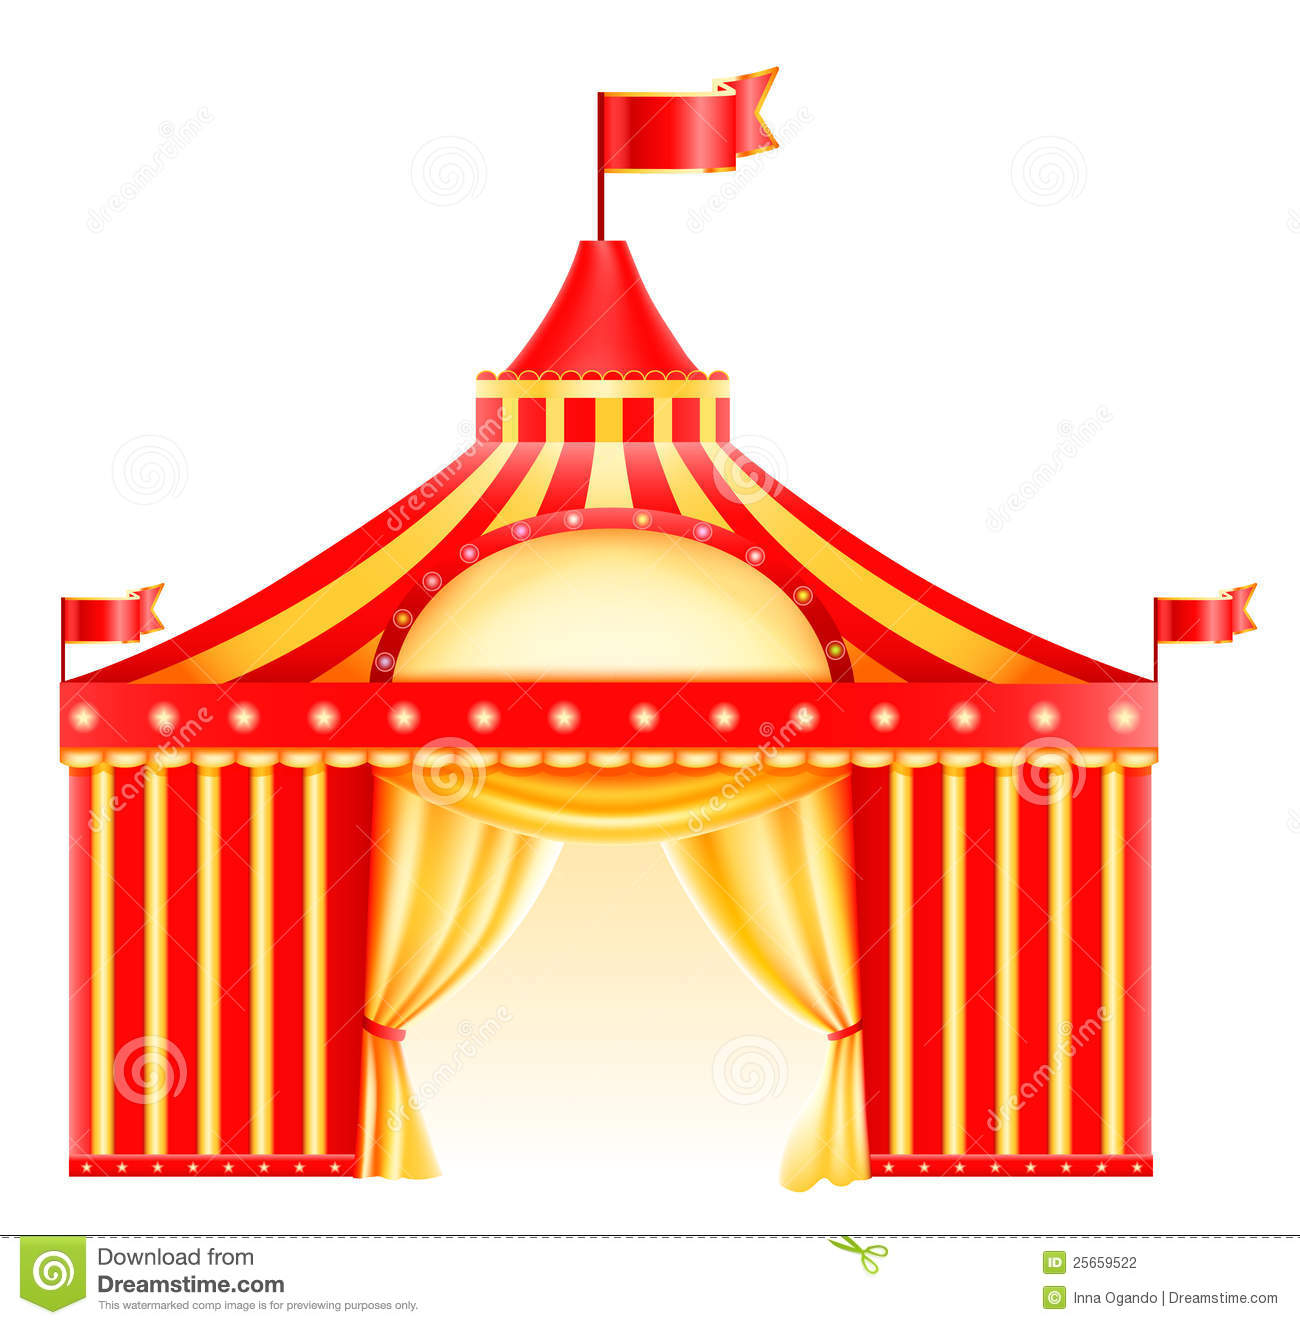 Circus icon  sc 1 st  Dreamstime.com & Circus icon stock vector. Illustration of marquee gold - 25659522